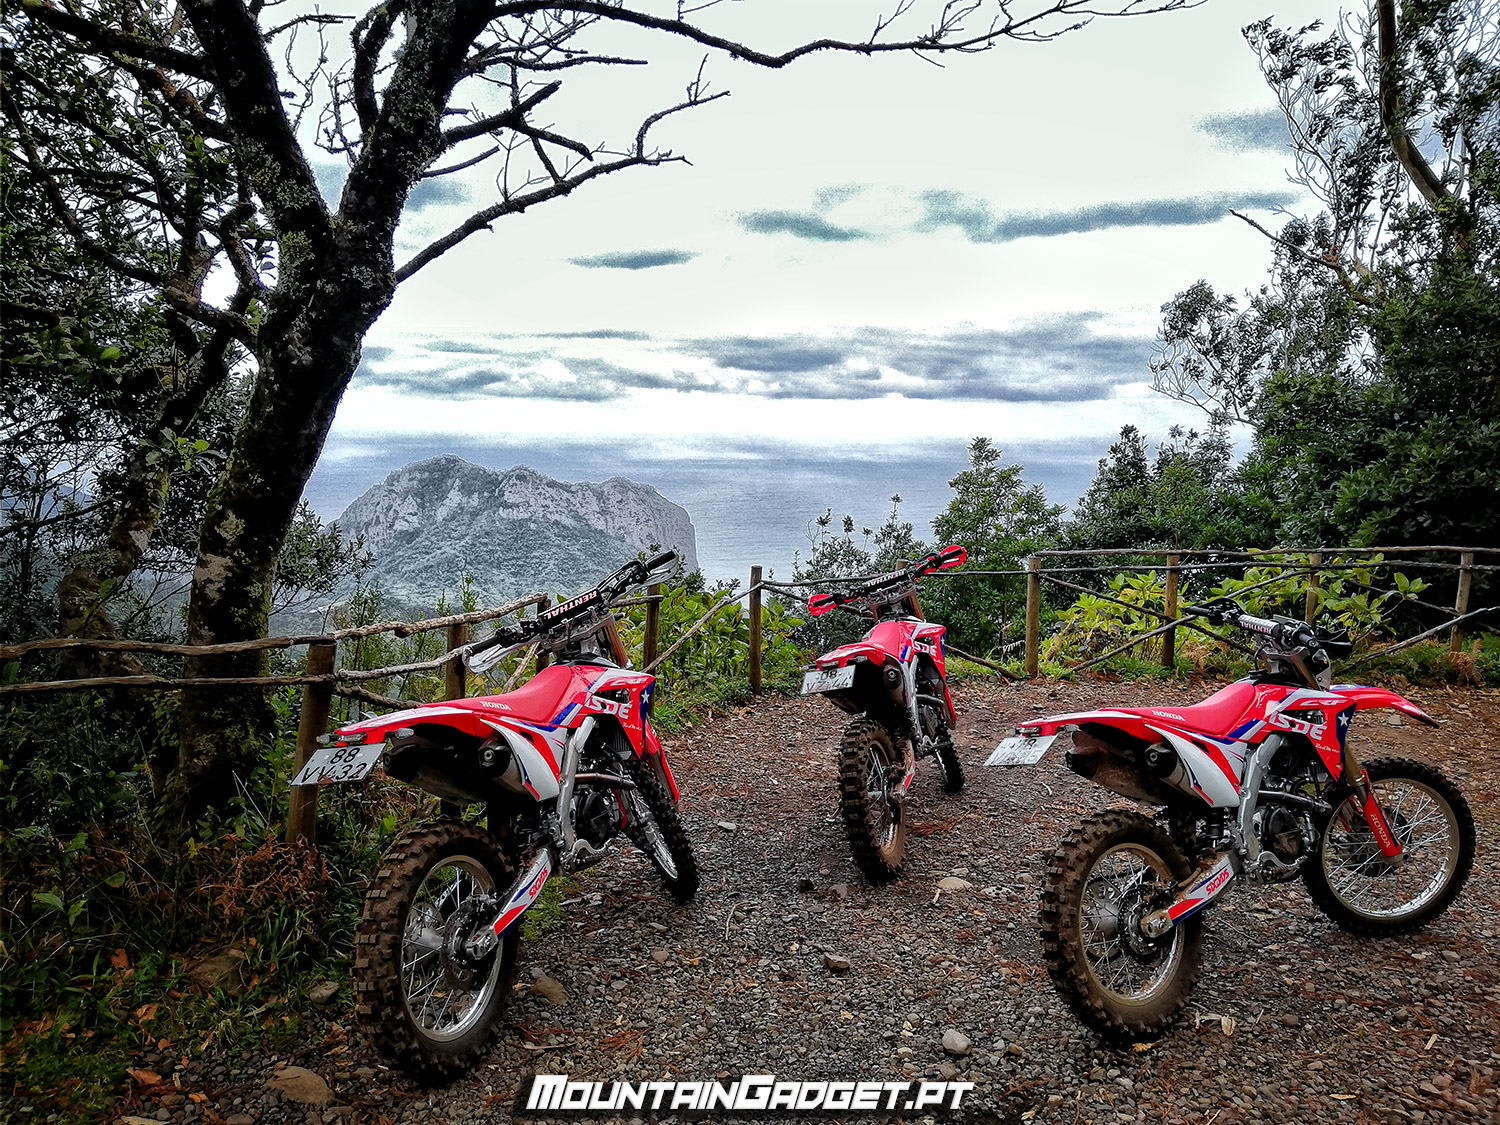 Three Hondas CRF450RX 2018 on an off-road sightseeing for Porto da Cruz